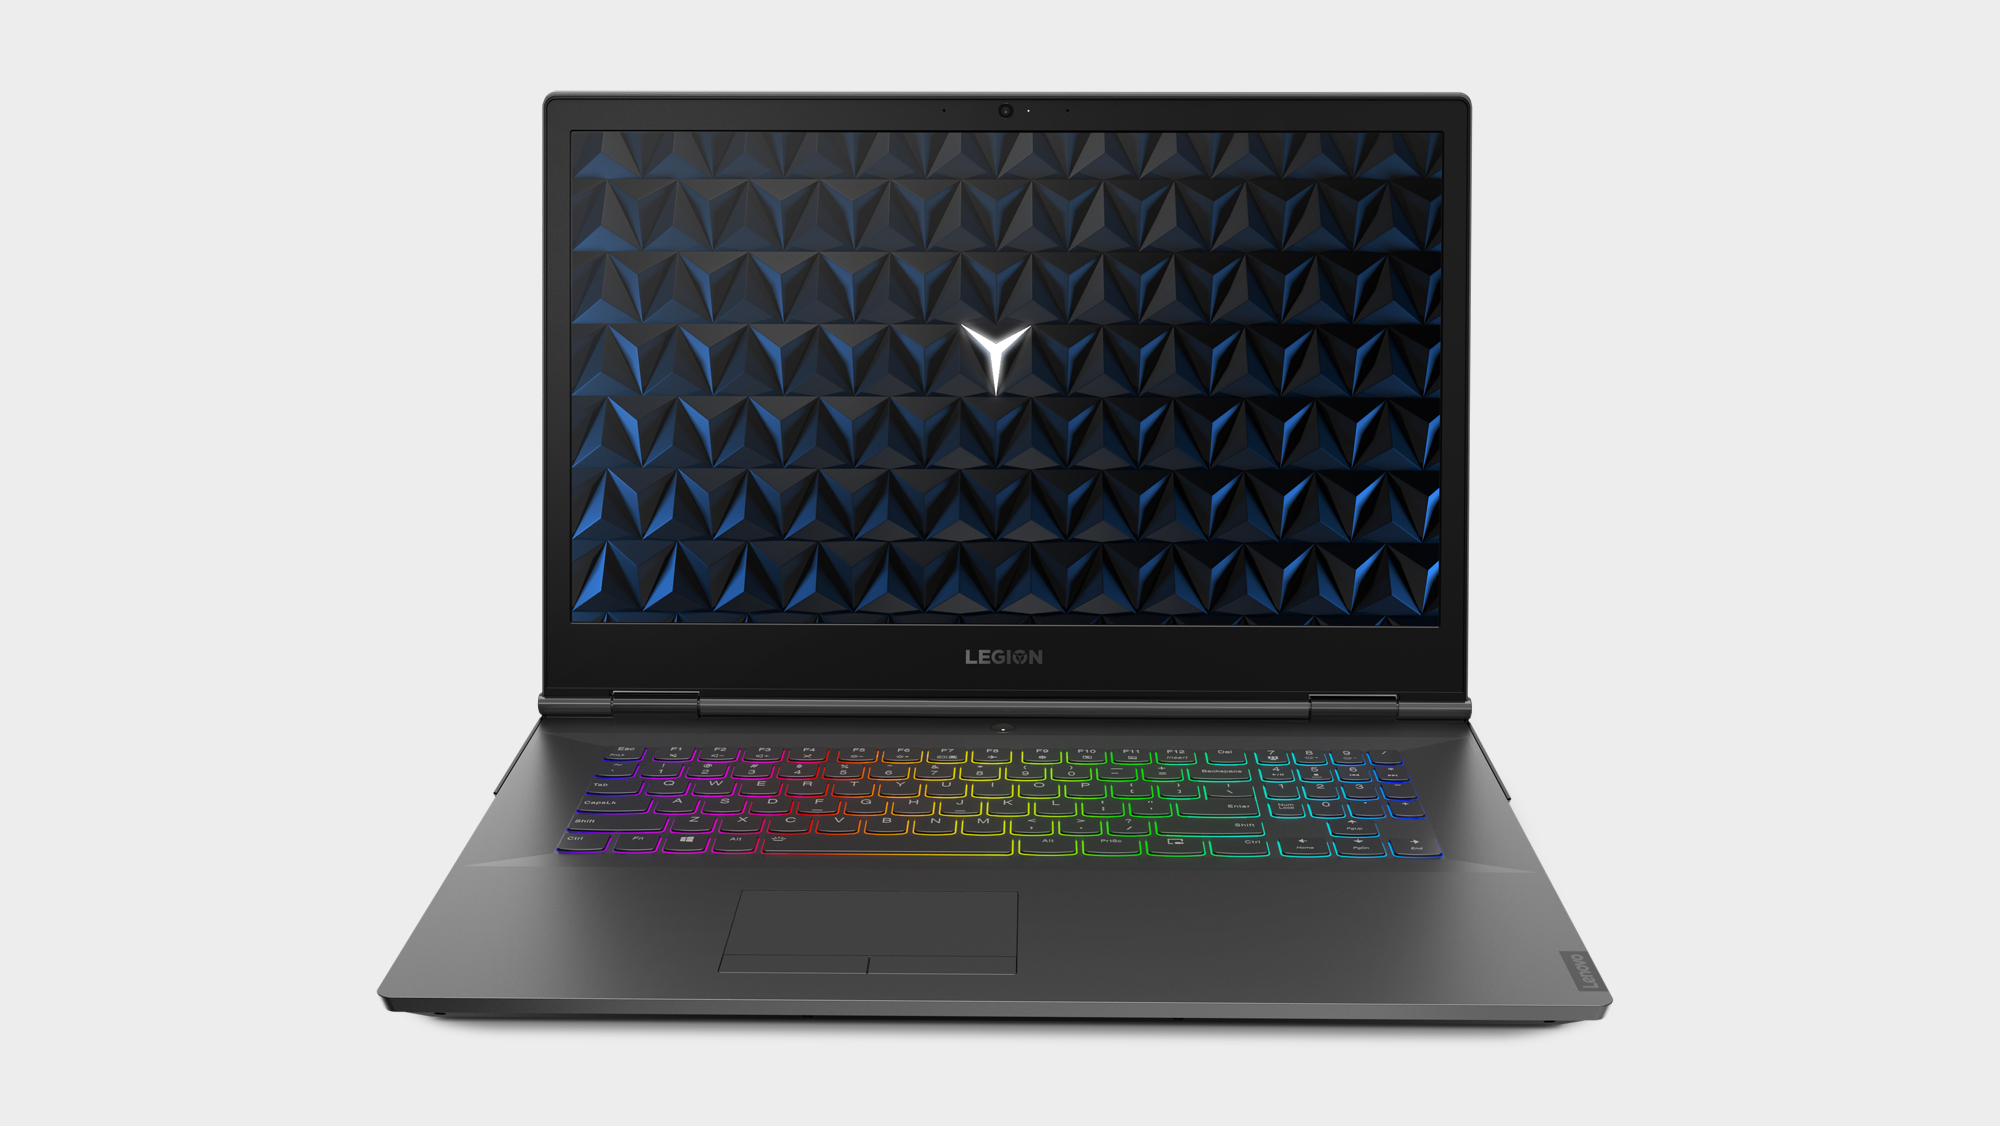 The best gaming laptop 2019